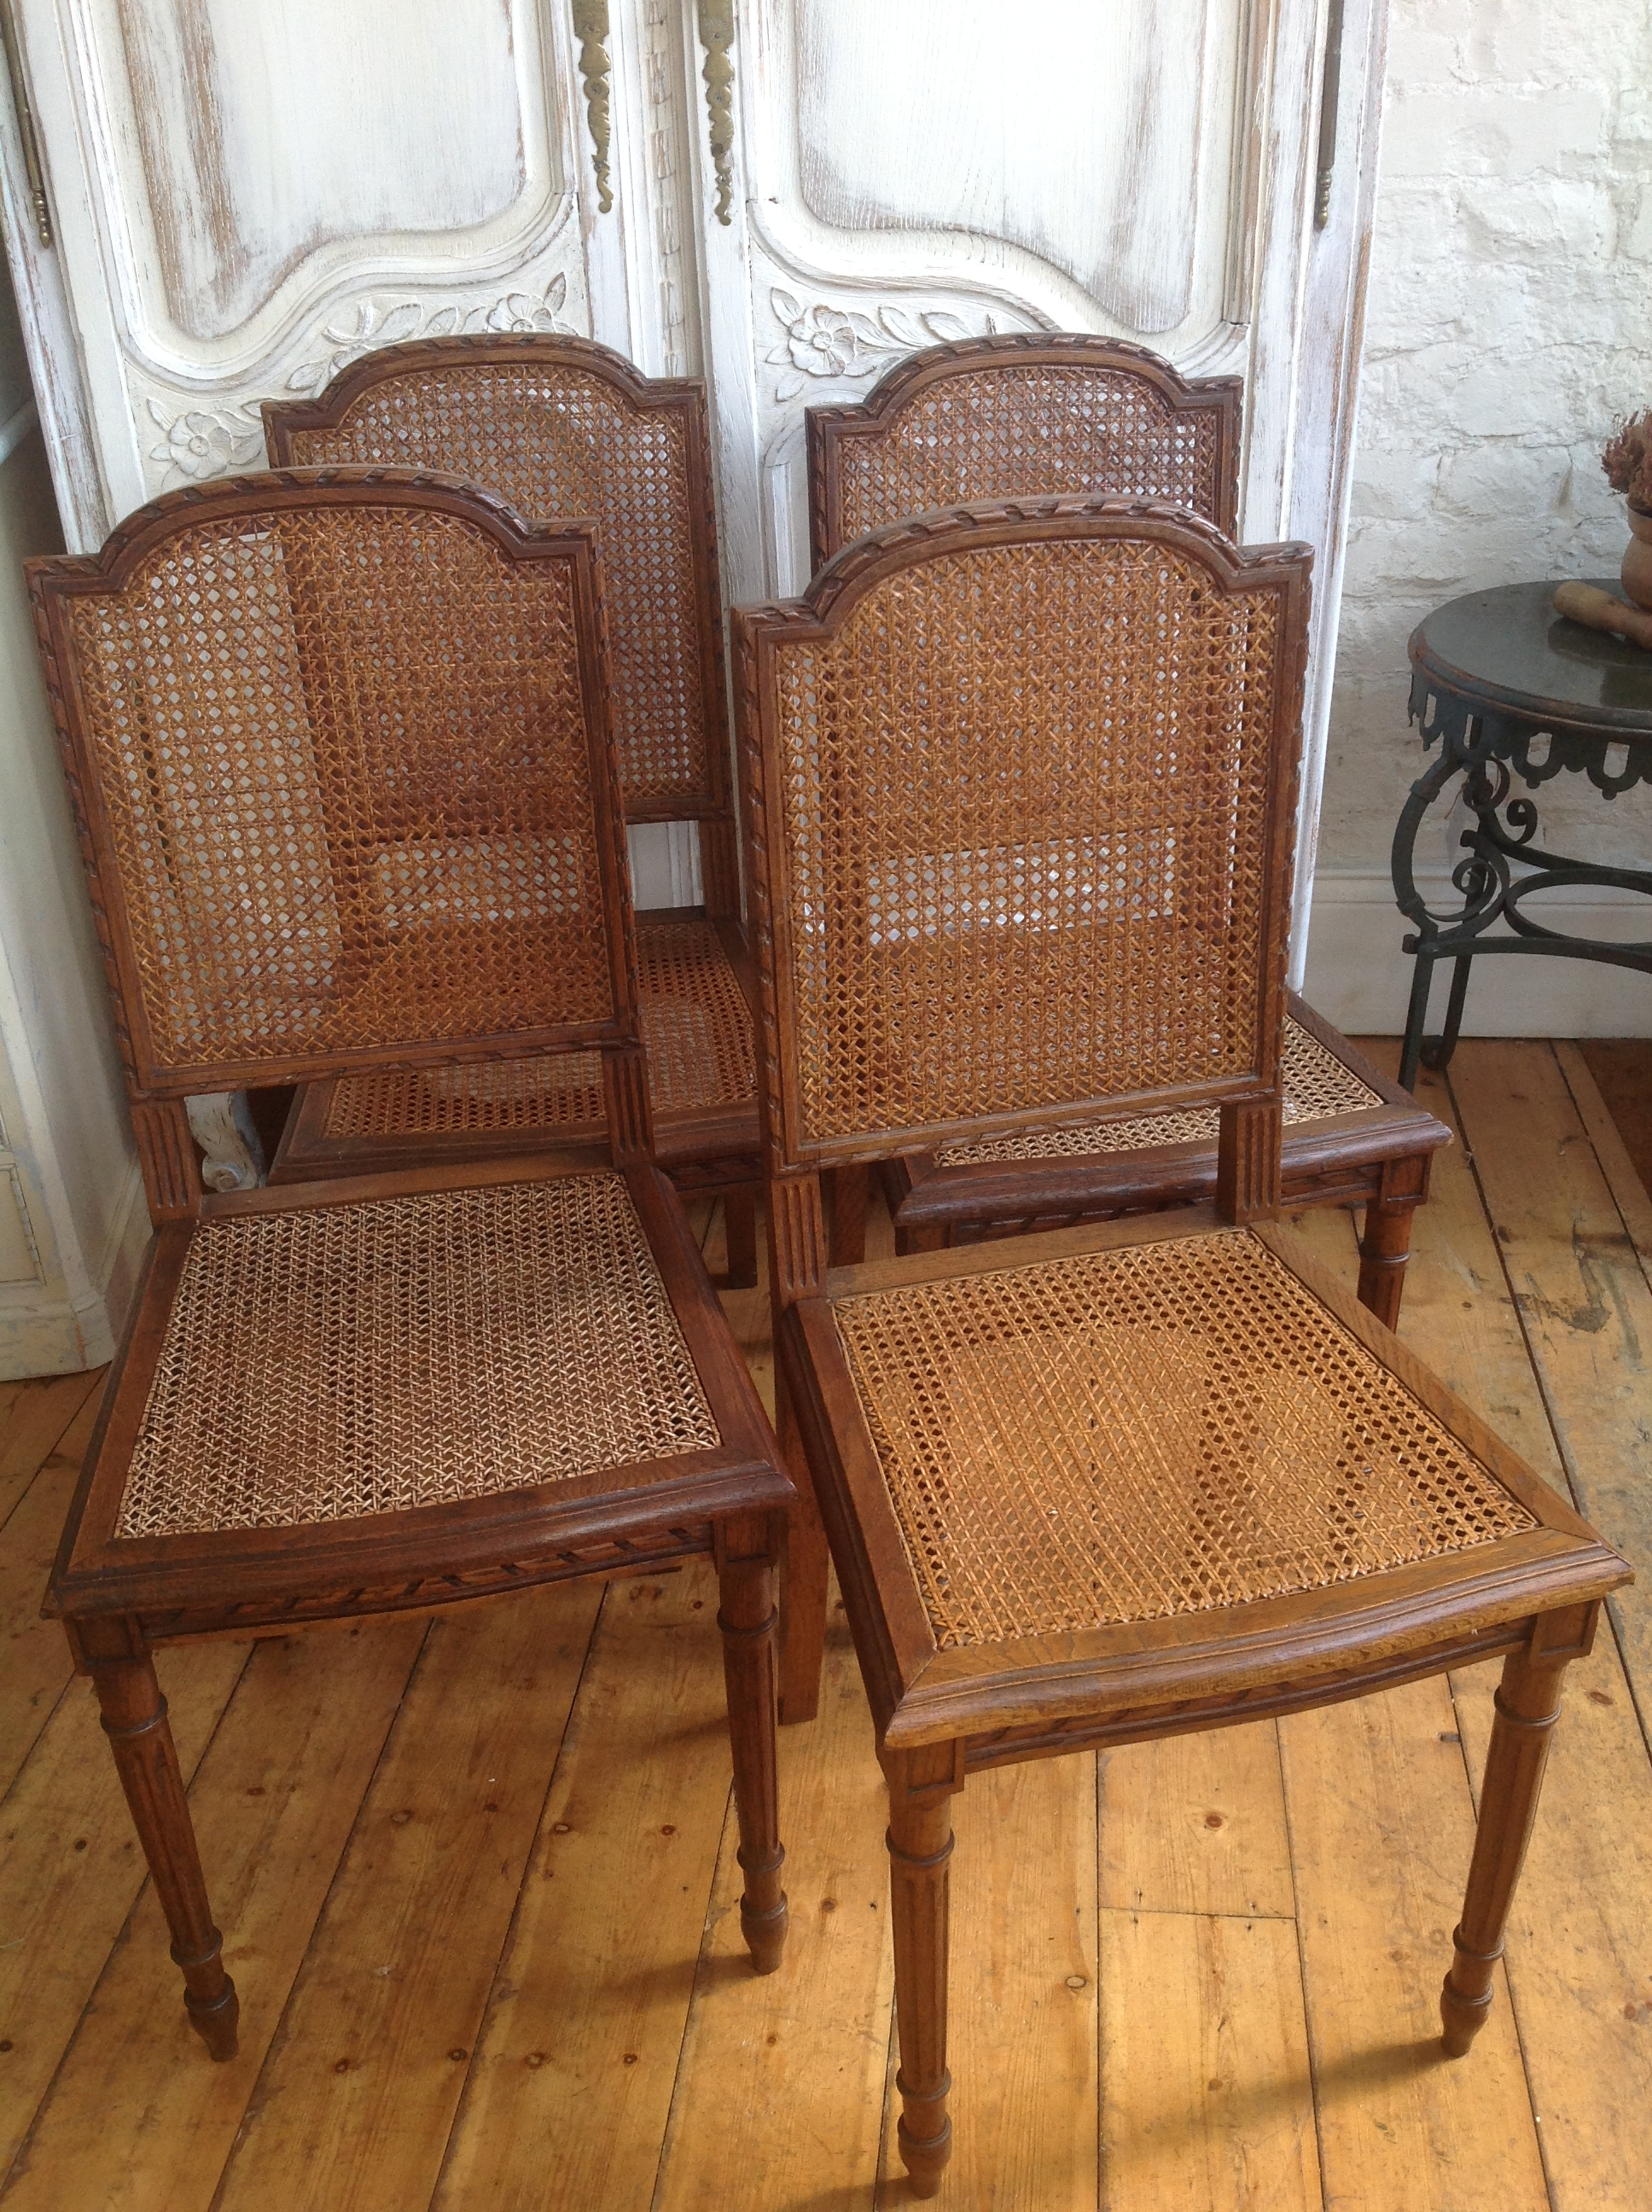 antique cane chairs walmart recliner french antiquites francaises